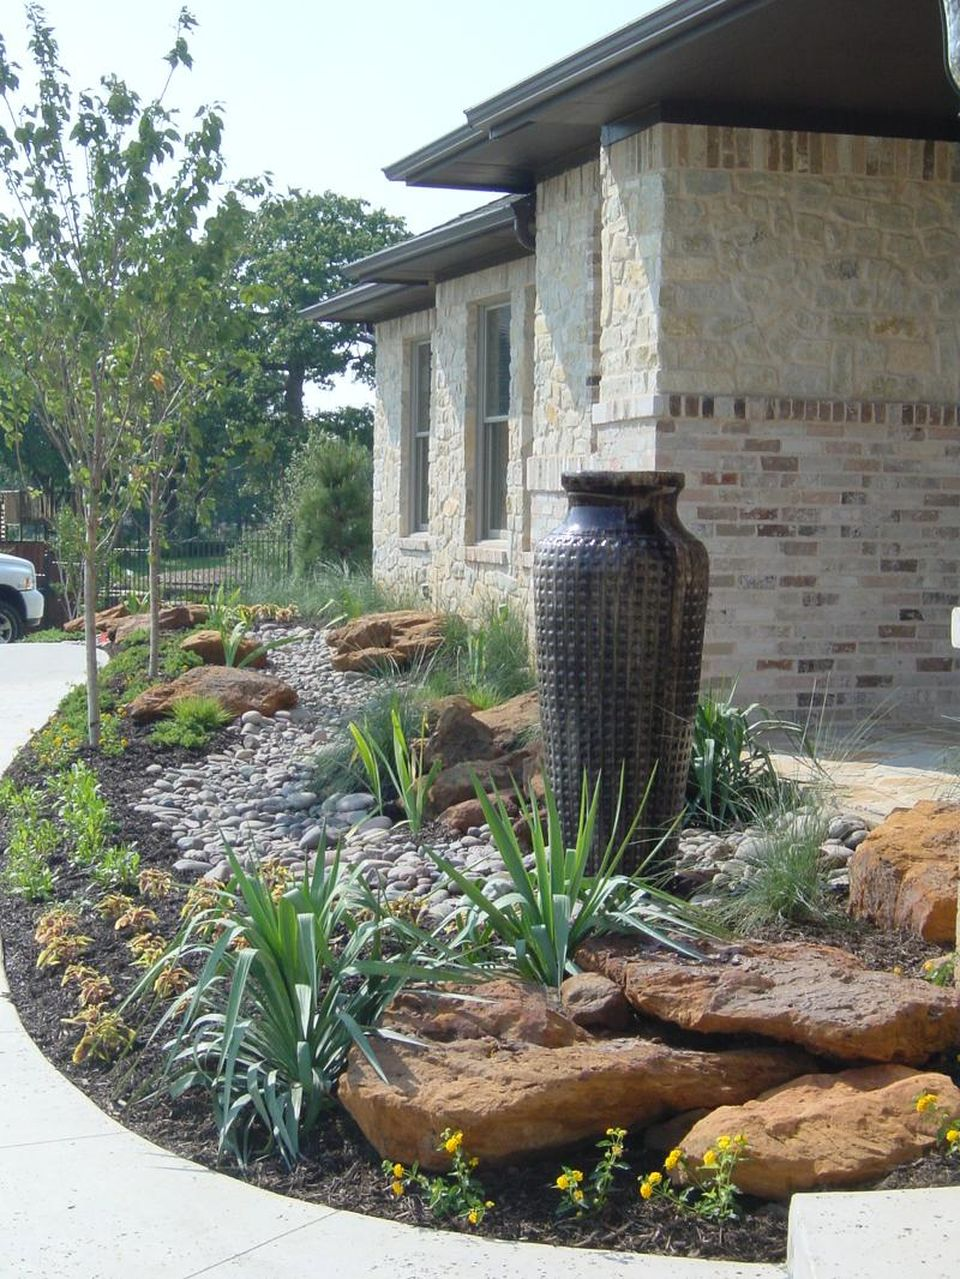 Inspiring Dry Riverbed and Creek Bed Landscaping Ideas 57